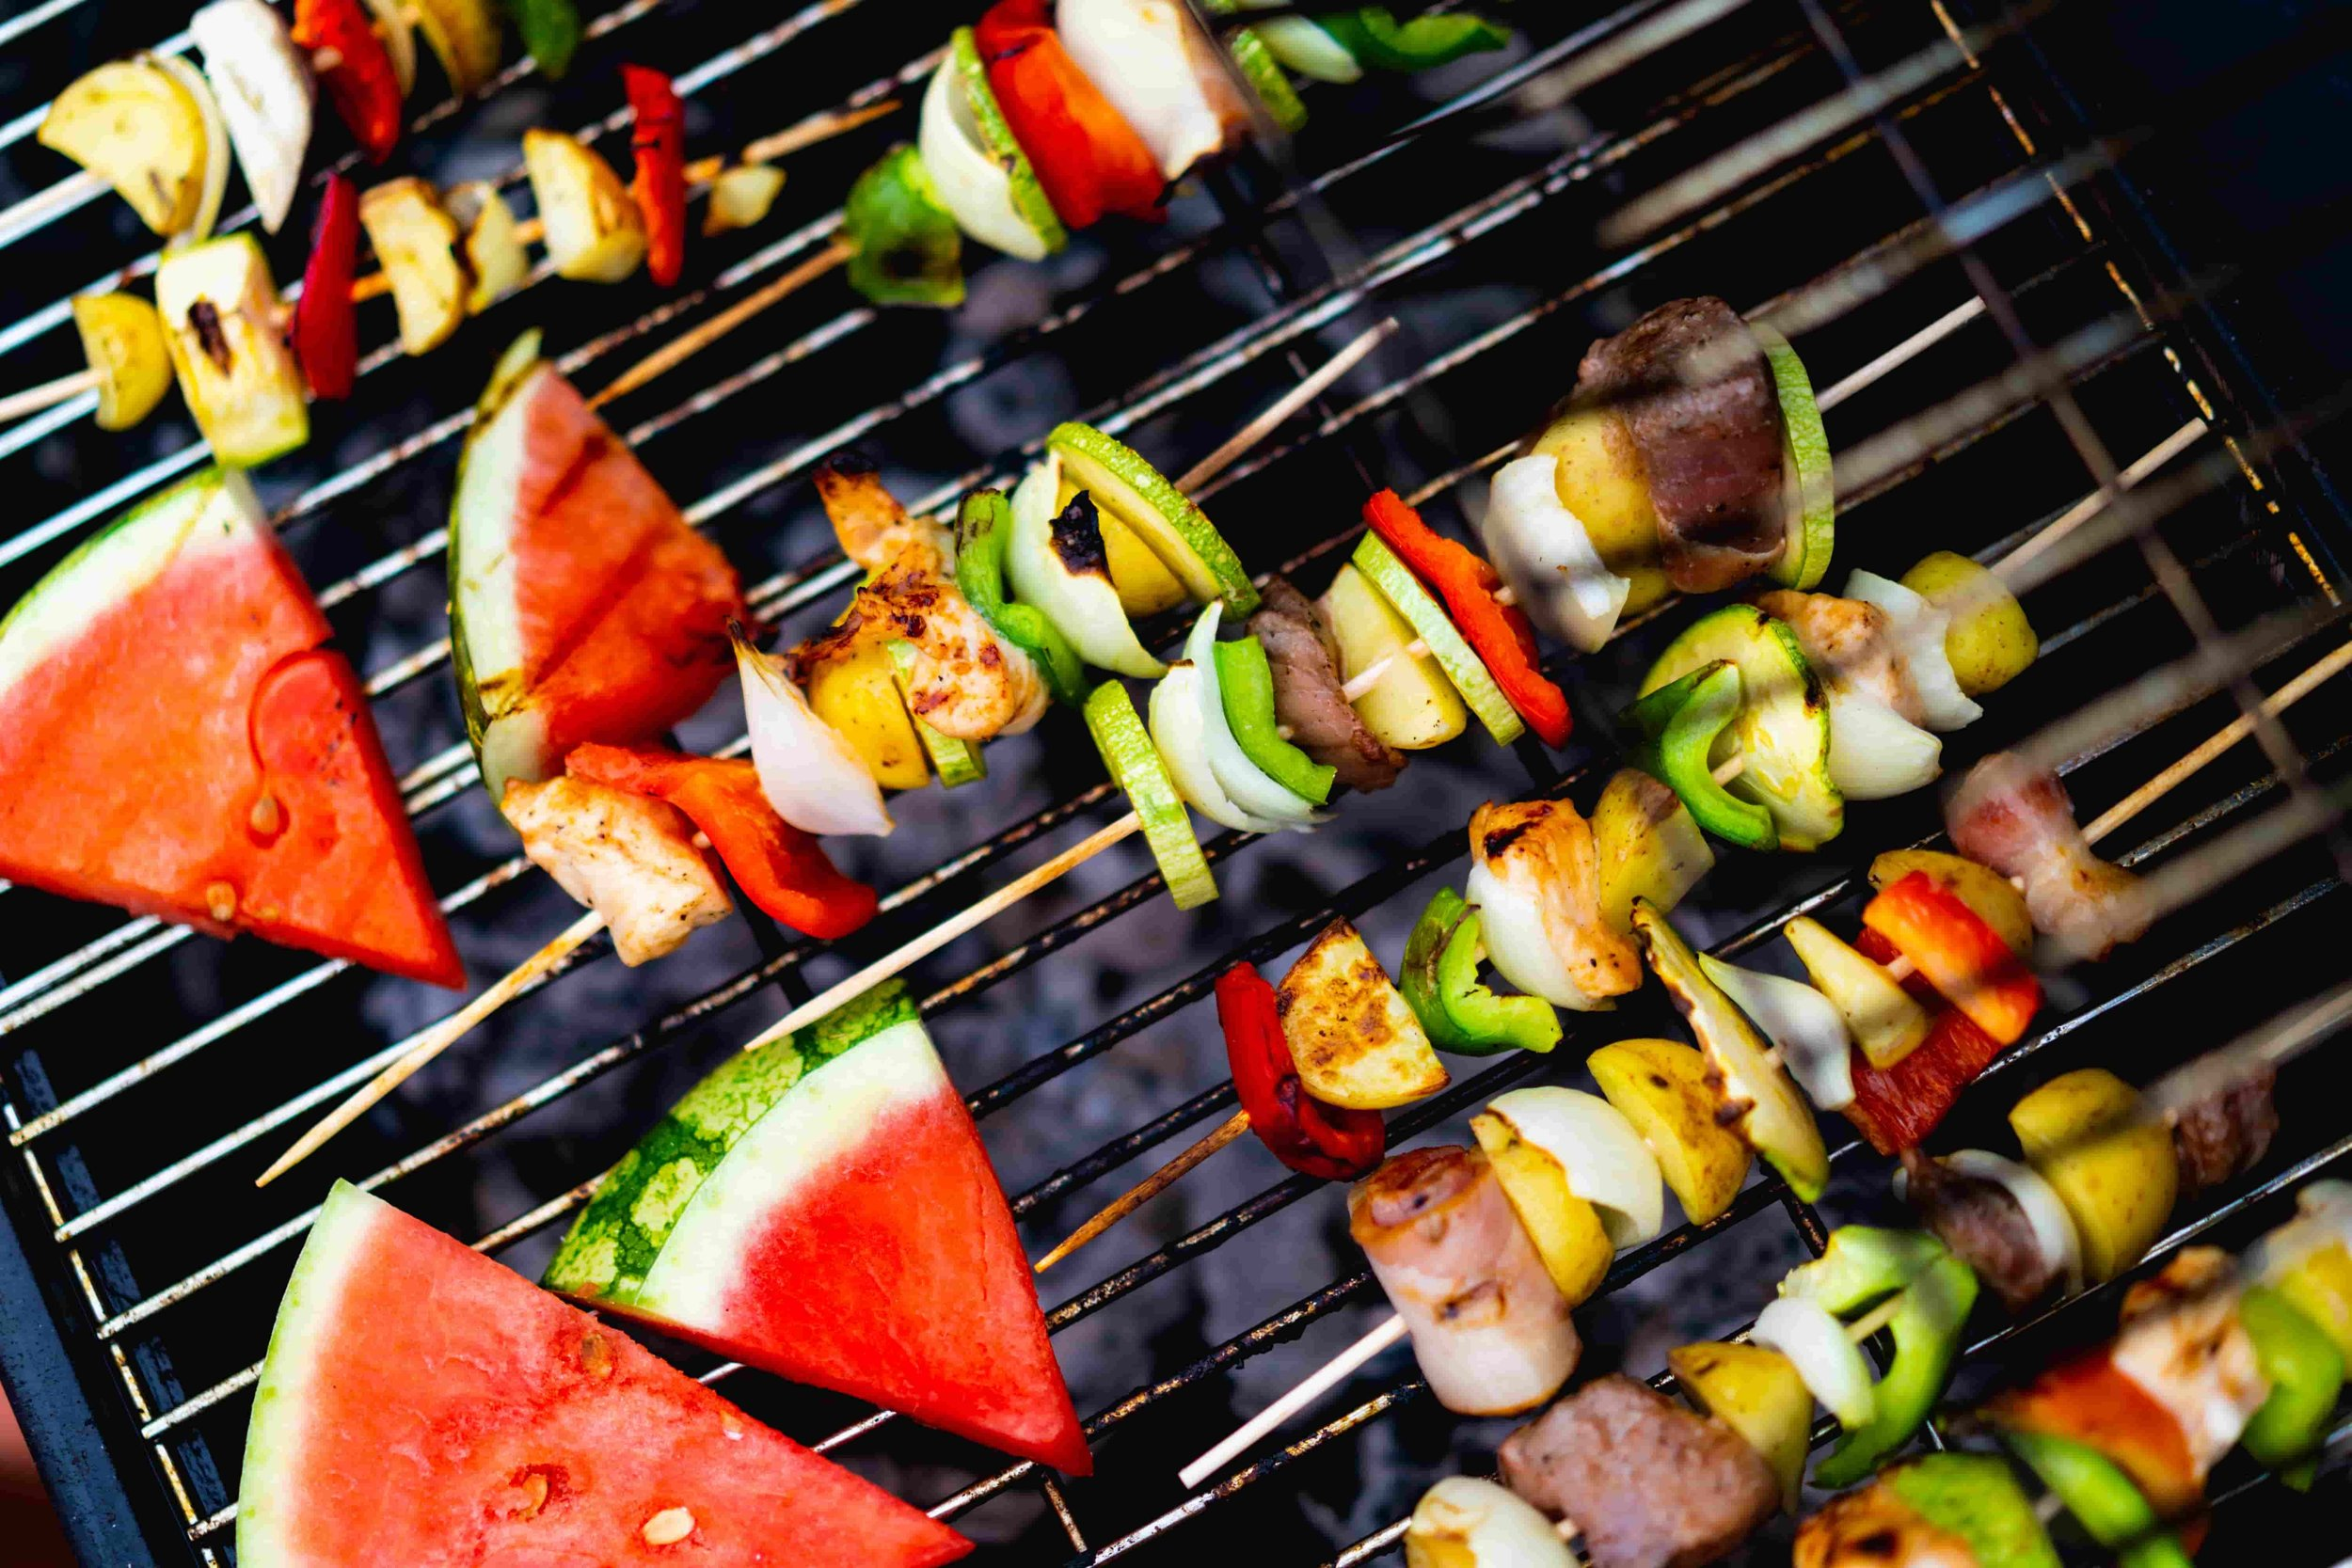 the ultimate guide to a zero waste summer BBQ from www.goingzerowaste.com #zerowaste #ecofriendly #BBQ #cookout #summer #entertaining